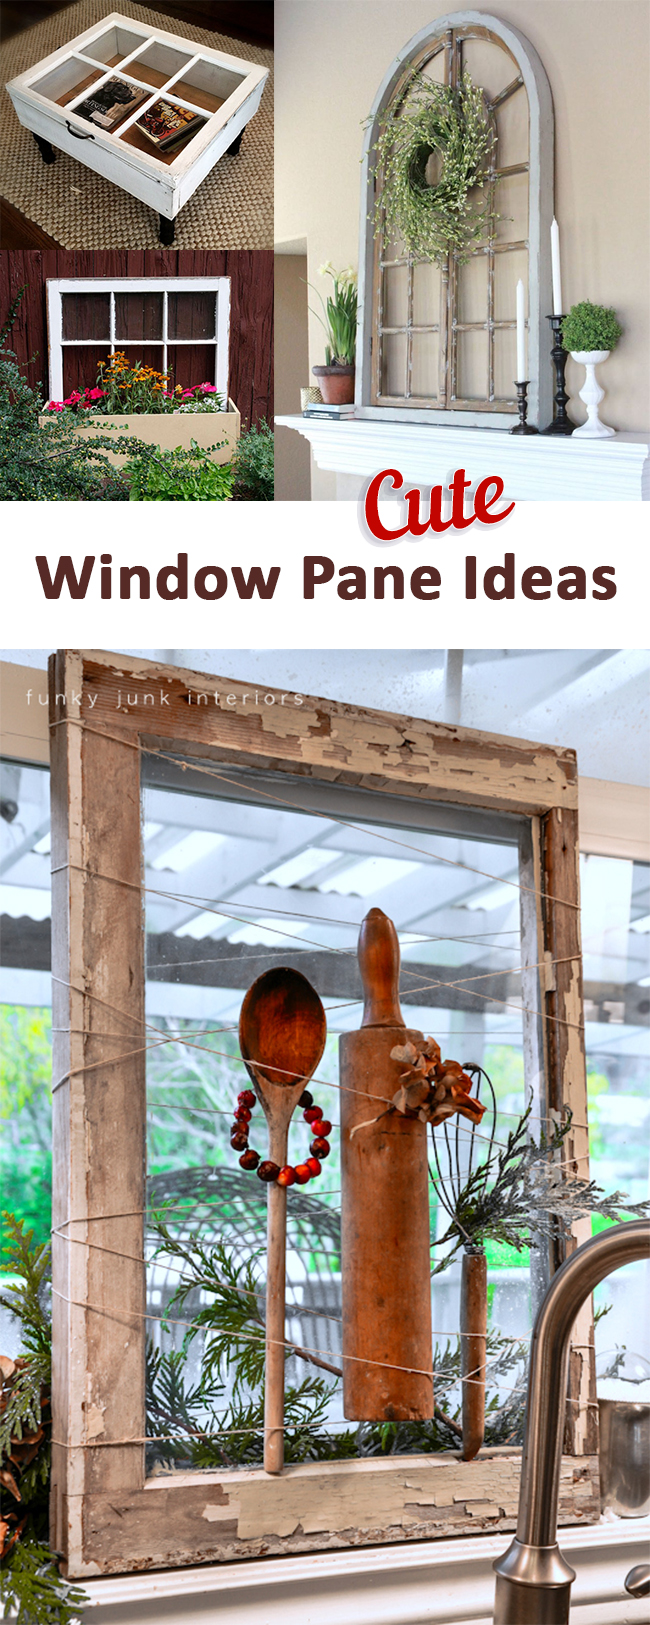 Window pane, window pane projects, repurpose window panes, cute crafts, popular pin, DIY projects, window pane DIY, easy home projects, easy home improvements.